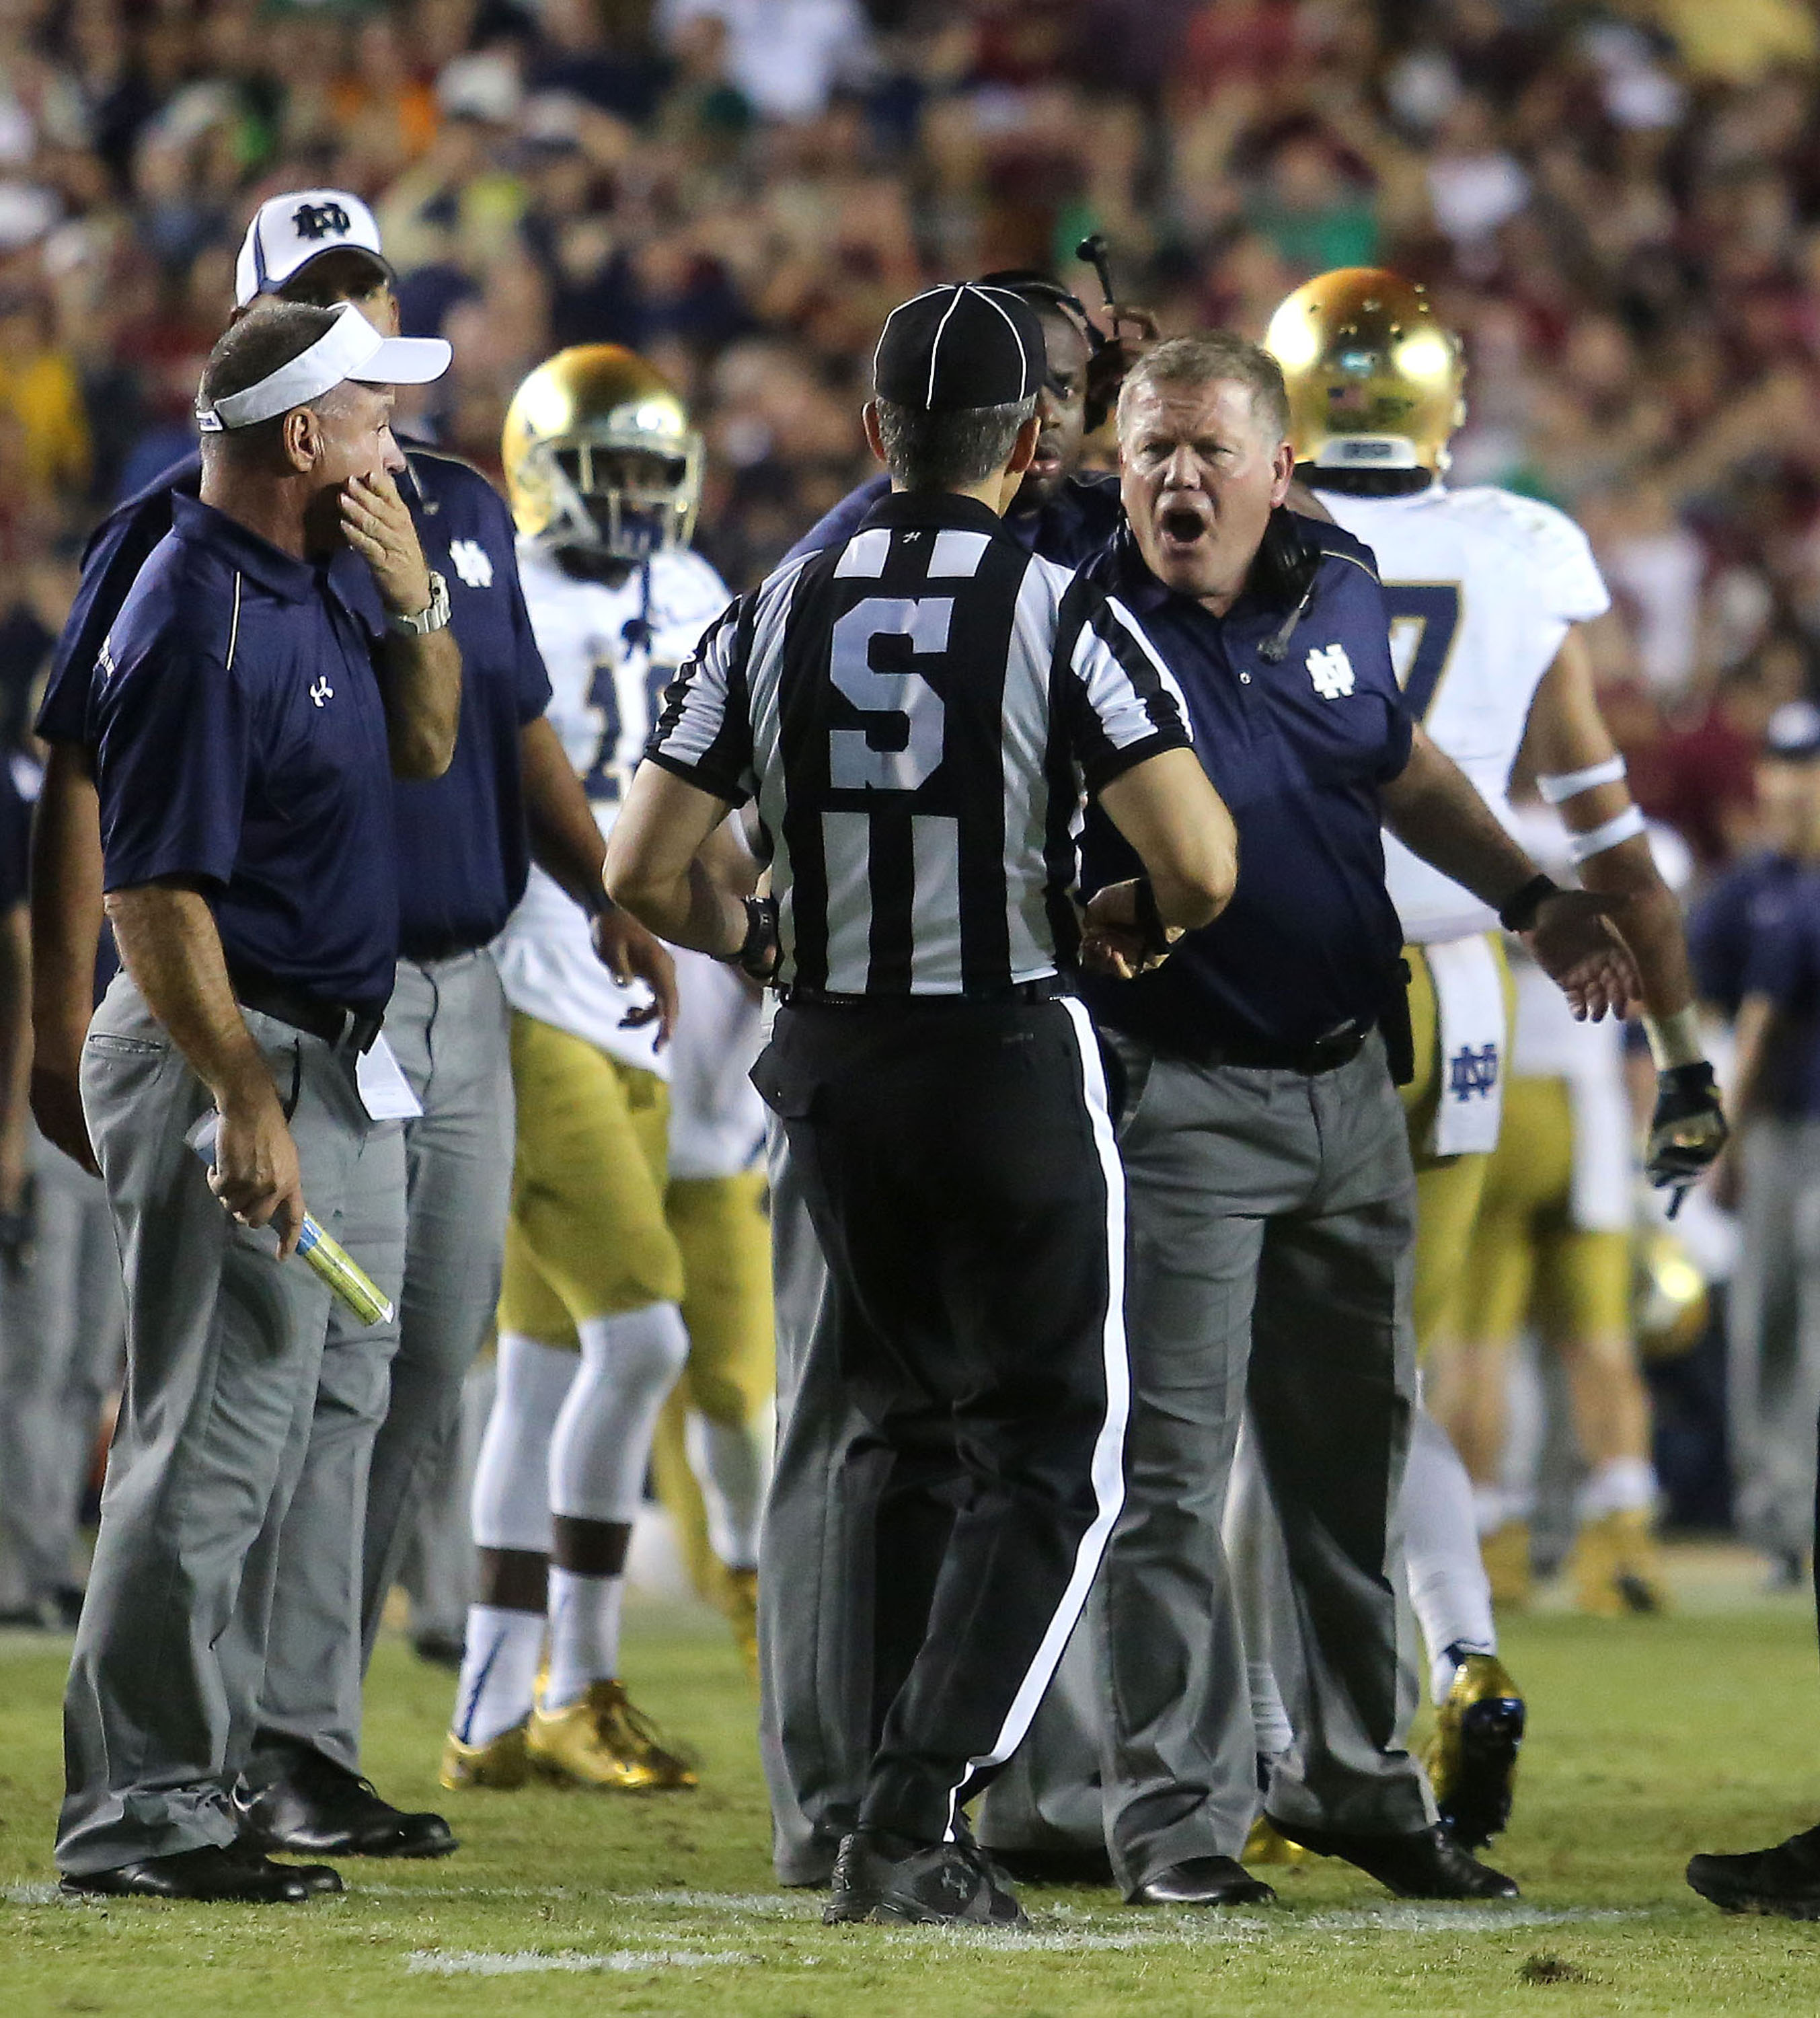 Notre Dame at Florida State